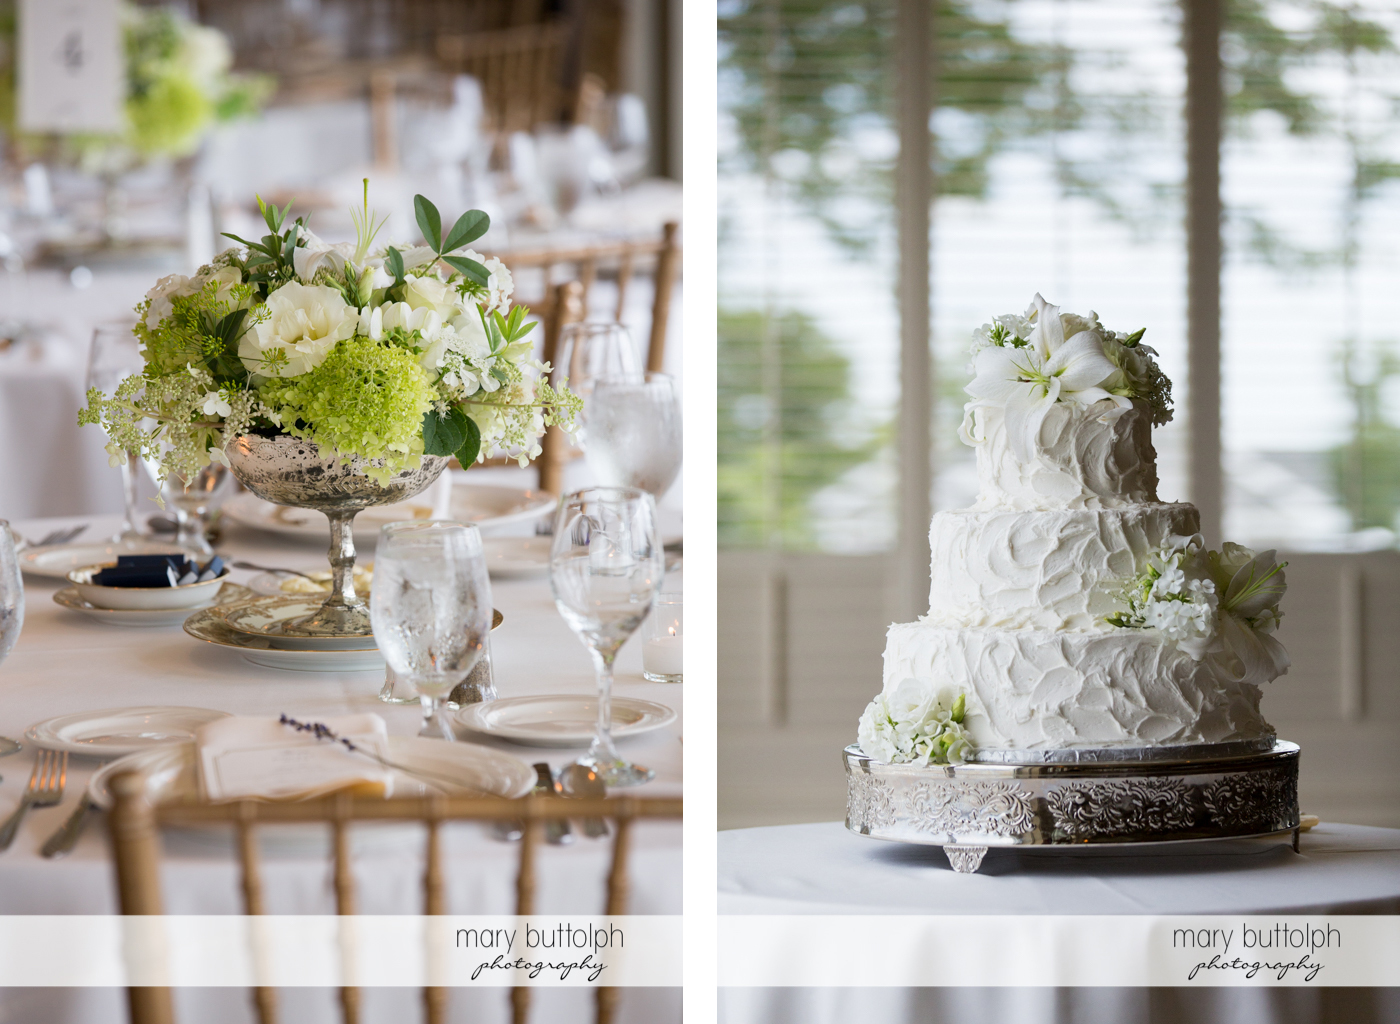 Flowers decorate the wedding venue and the wedding cake at Skaneateles Country Club Wedding